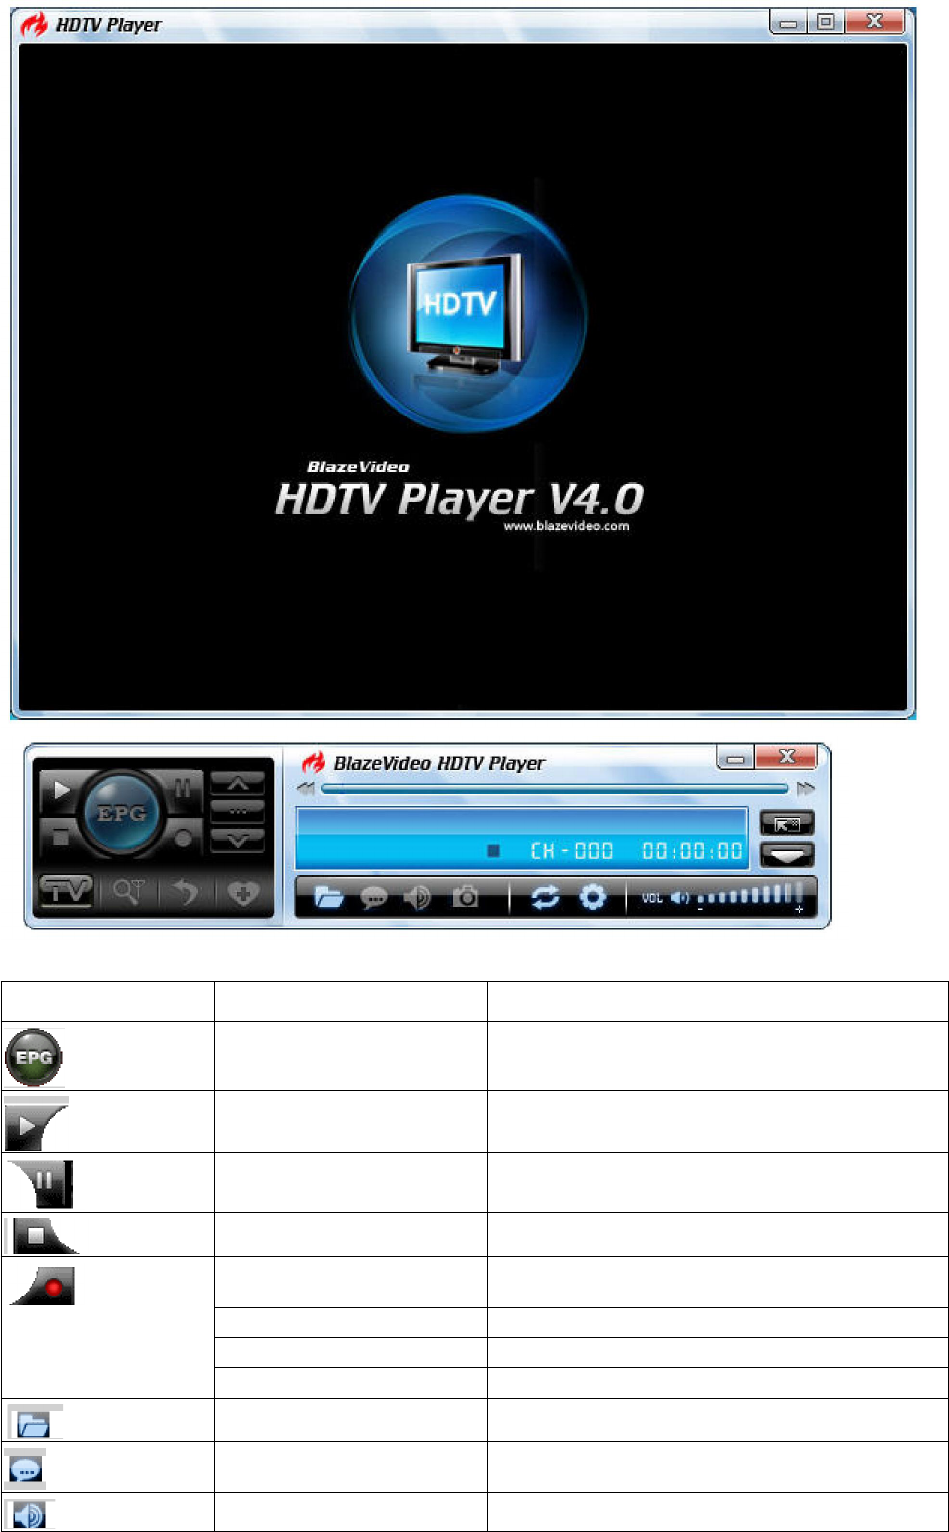 BLAZEVIDEO HDTV PLAYER DVB-T DRIVER FOR PC